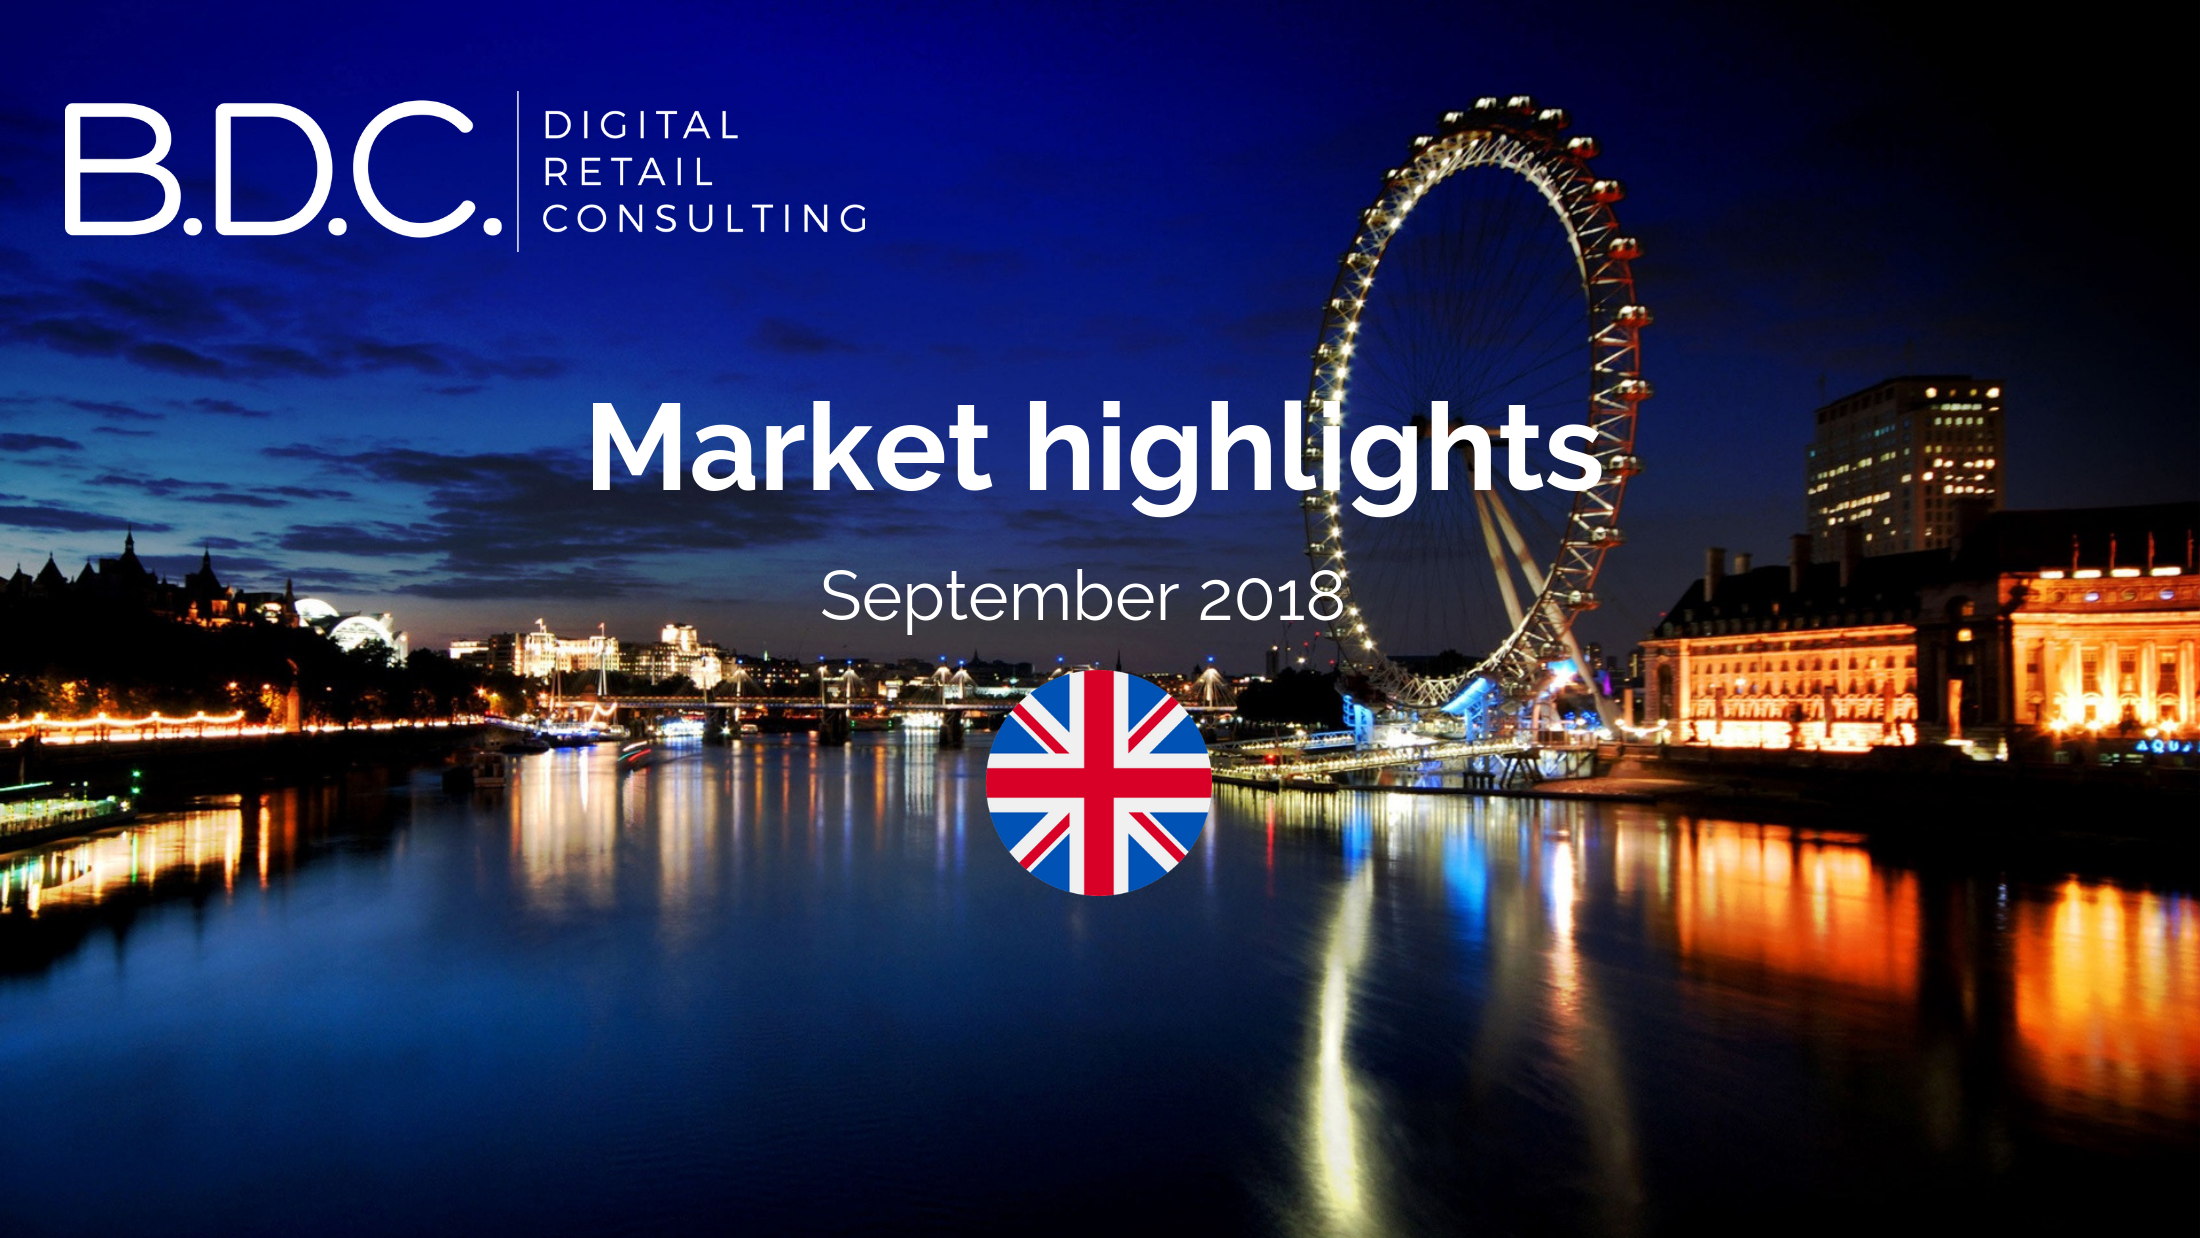 Trends News 10 - UK MARKET HIGHLIGHTS – SEPTEMBER 2018